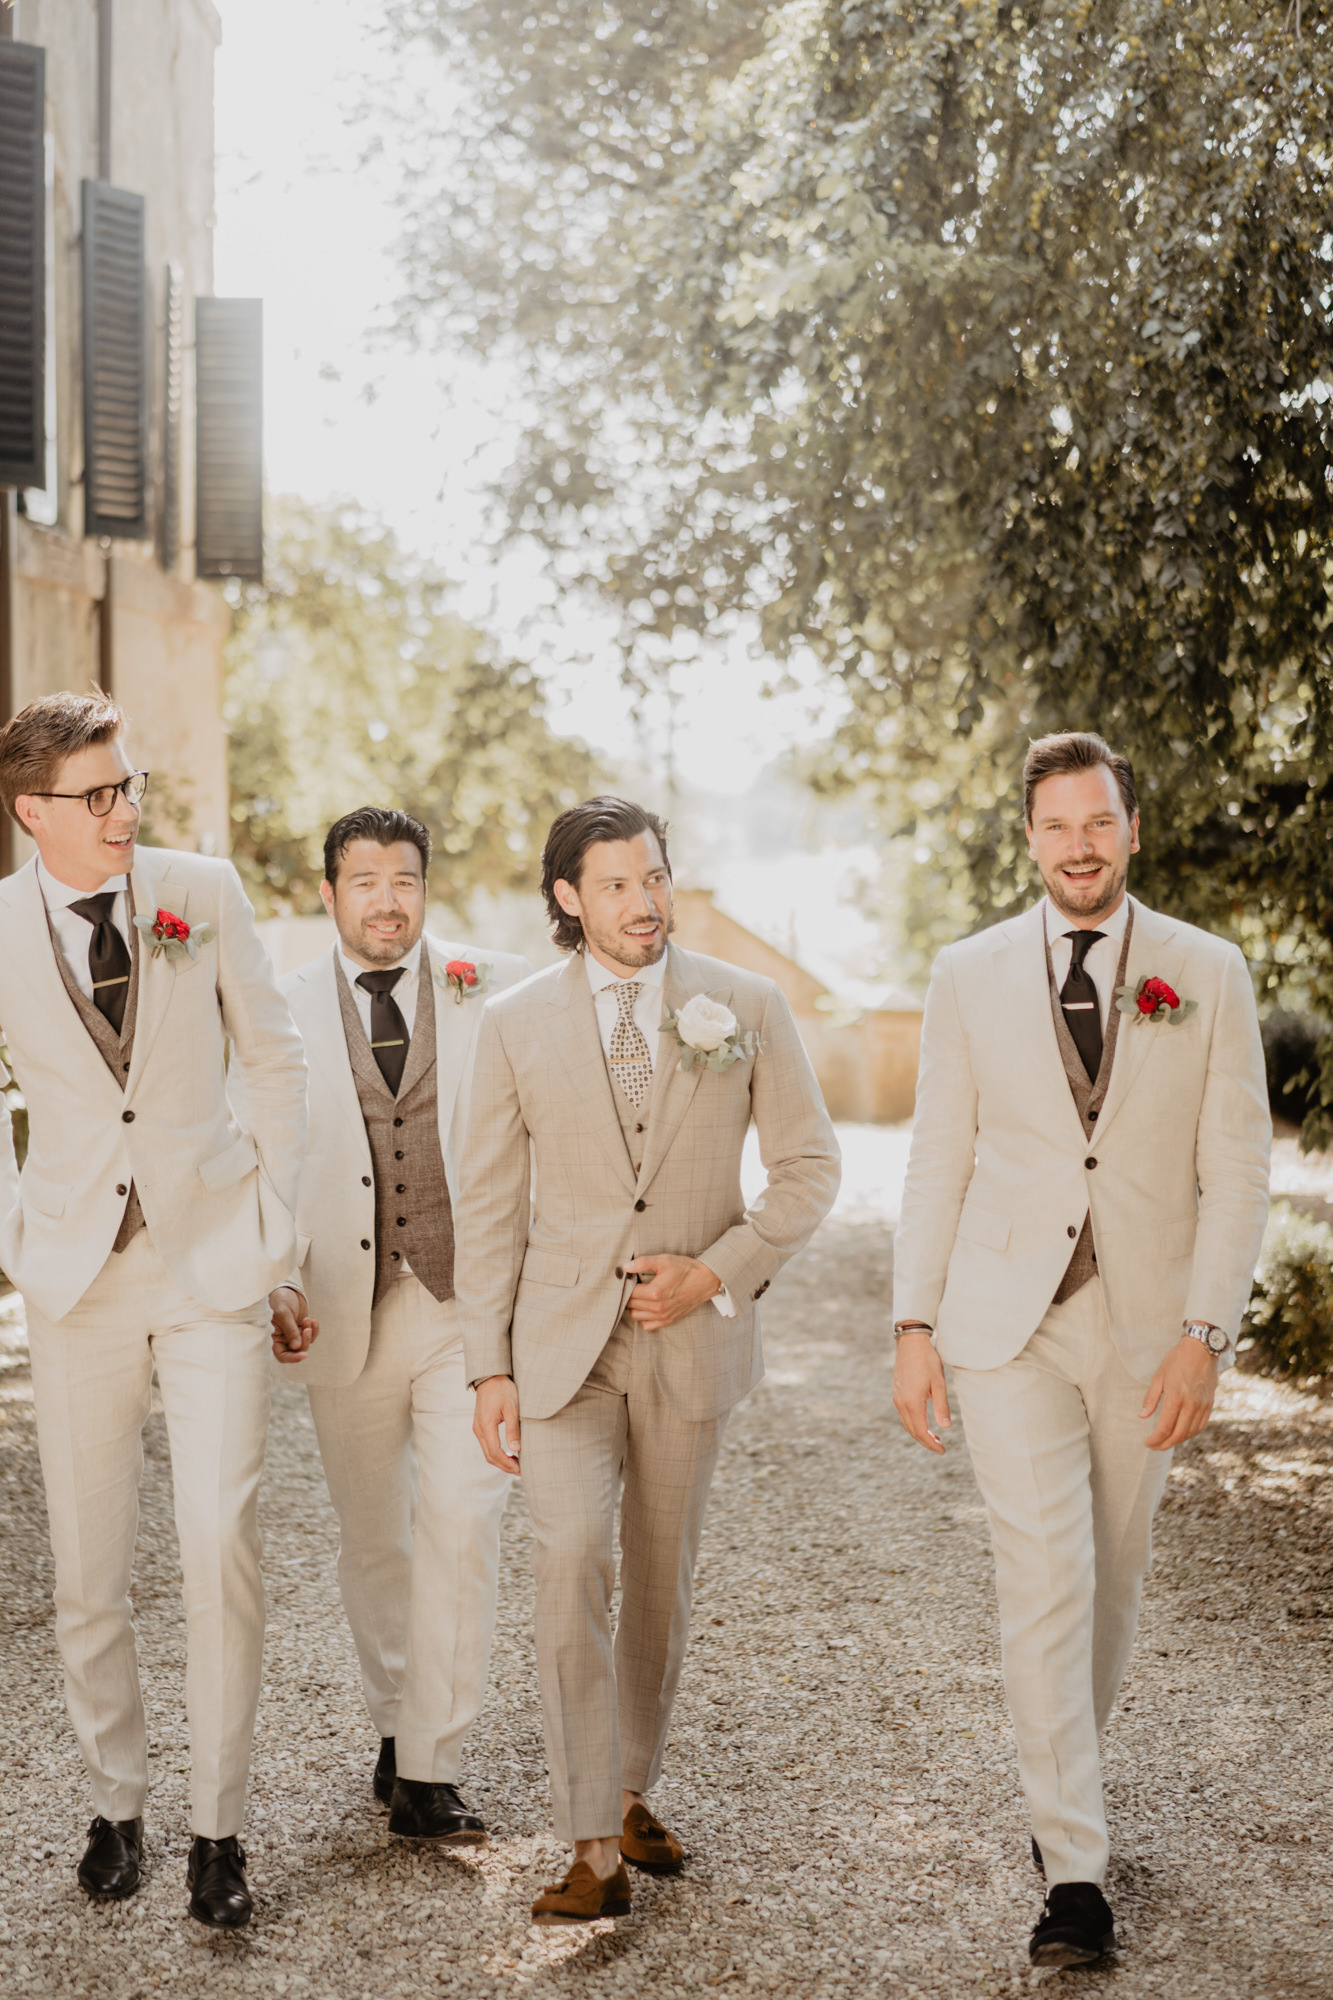 Men's fashion groom party taupe suits brown ties, photo by David Bastianoni, Italy wedding photographer